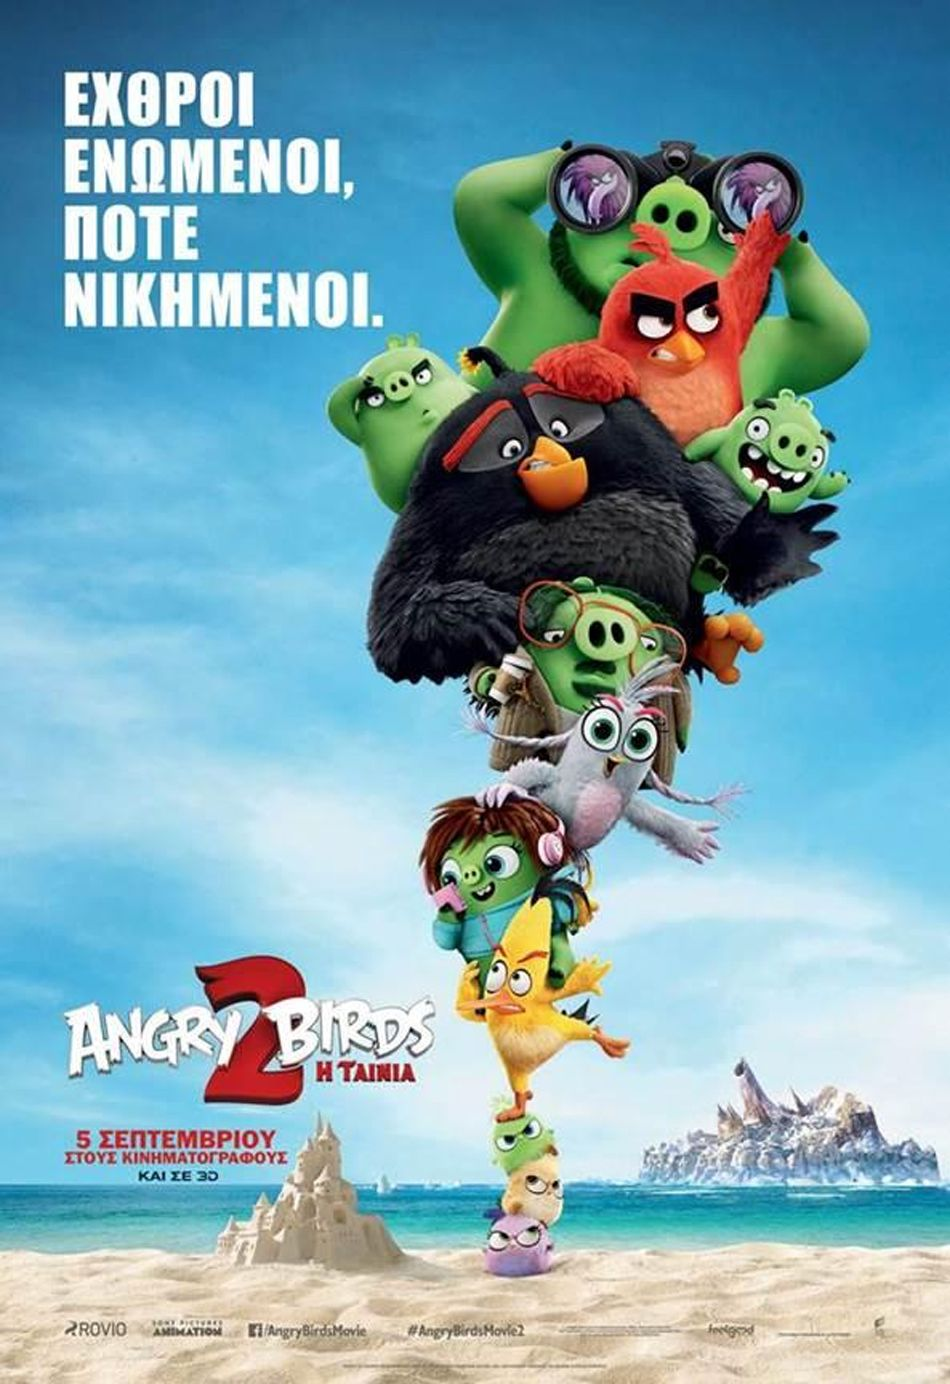 Angry Birds: H Ταινία 2 (The Angry Birds Movie 2) - Trailer / Τρέιλερ Poster